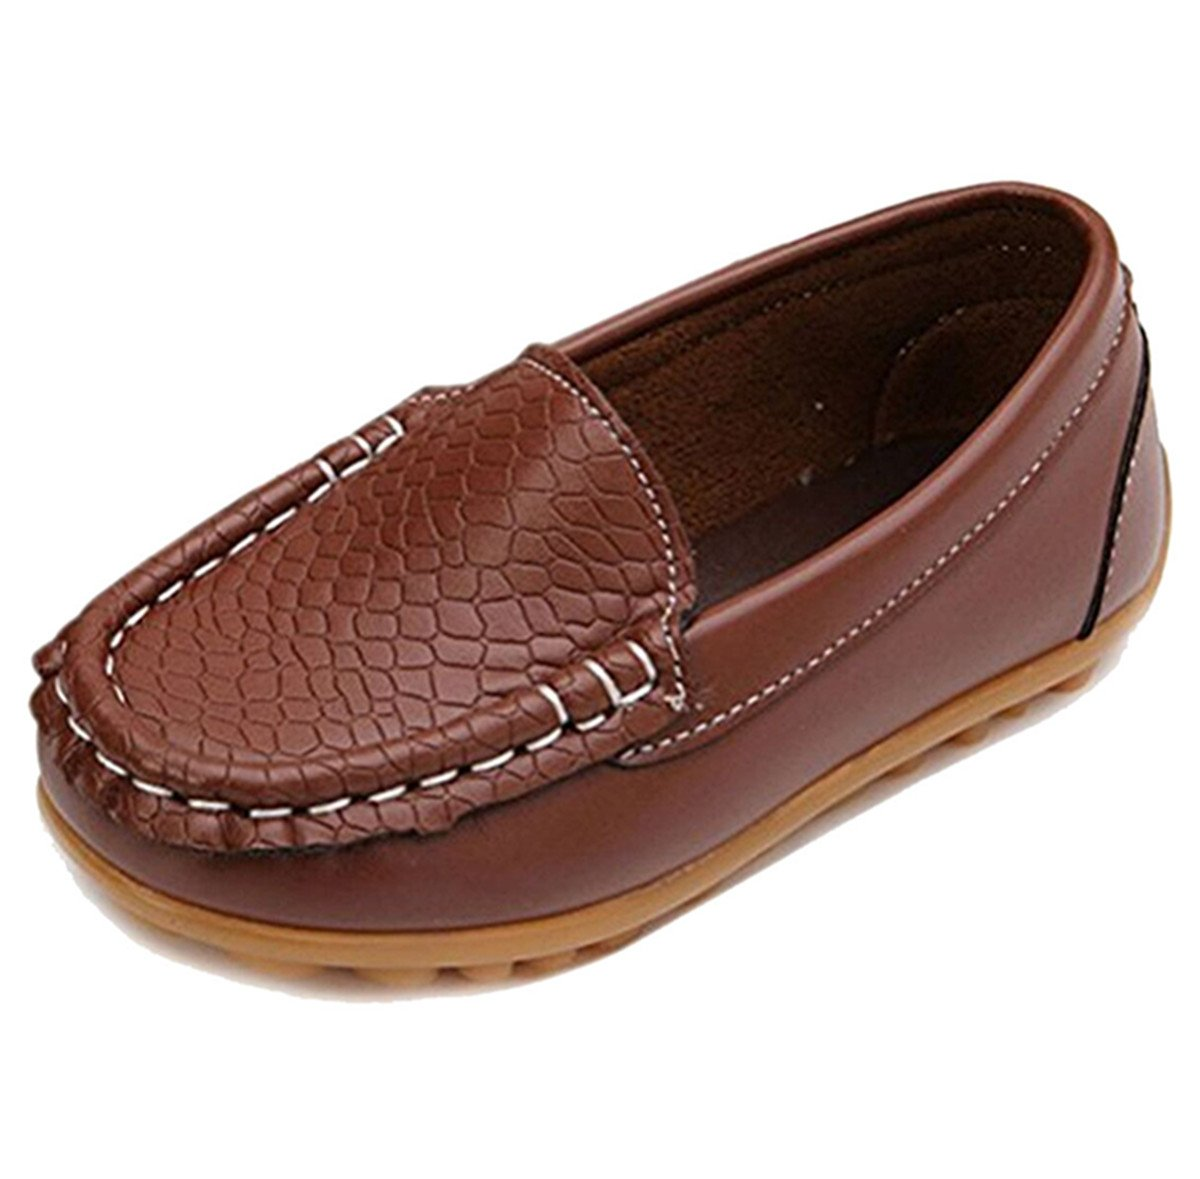 Toddler Boys Girls Leather Loafers Slip On Boat Dress Shoes Flat (5 M US Toddler, Brown)